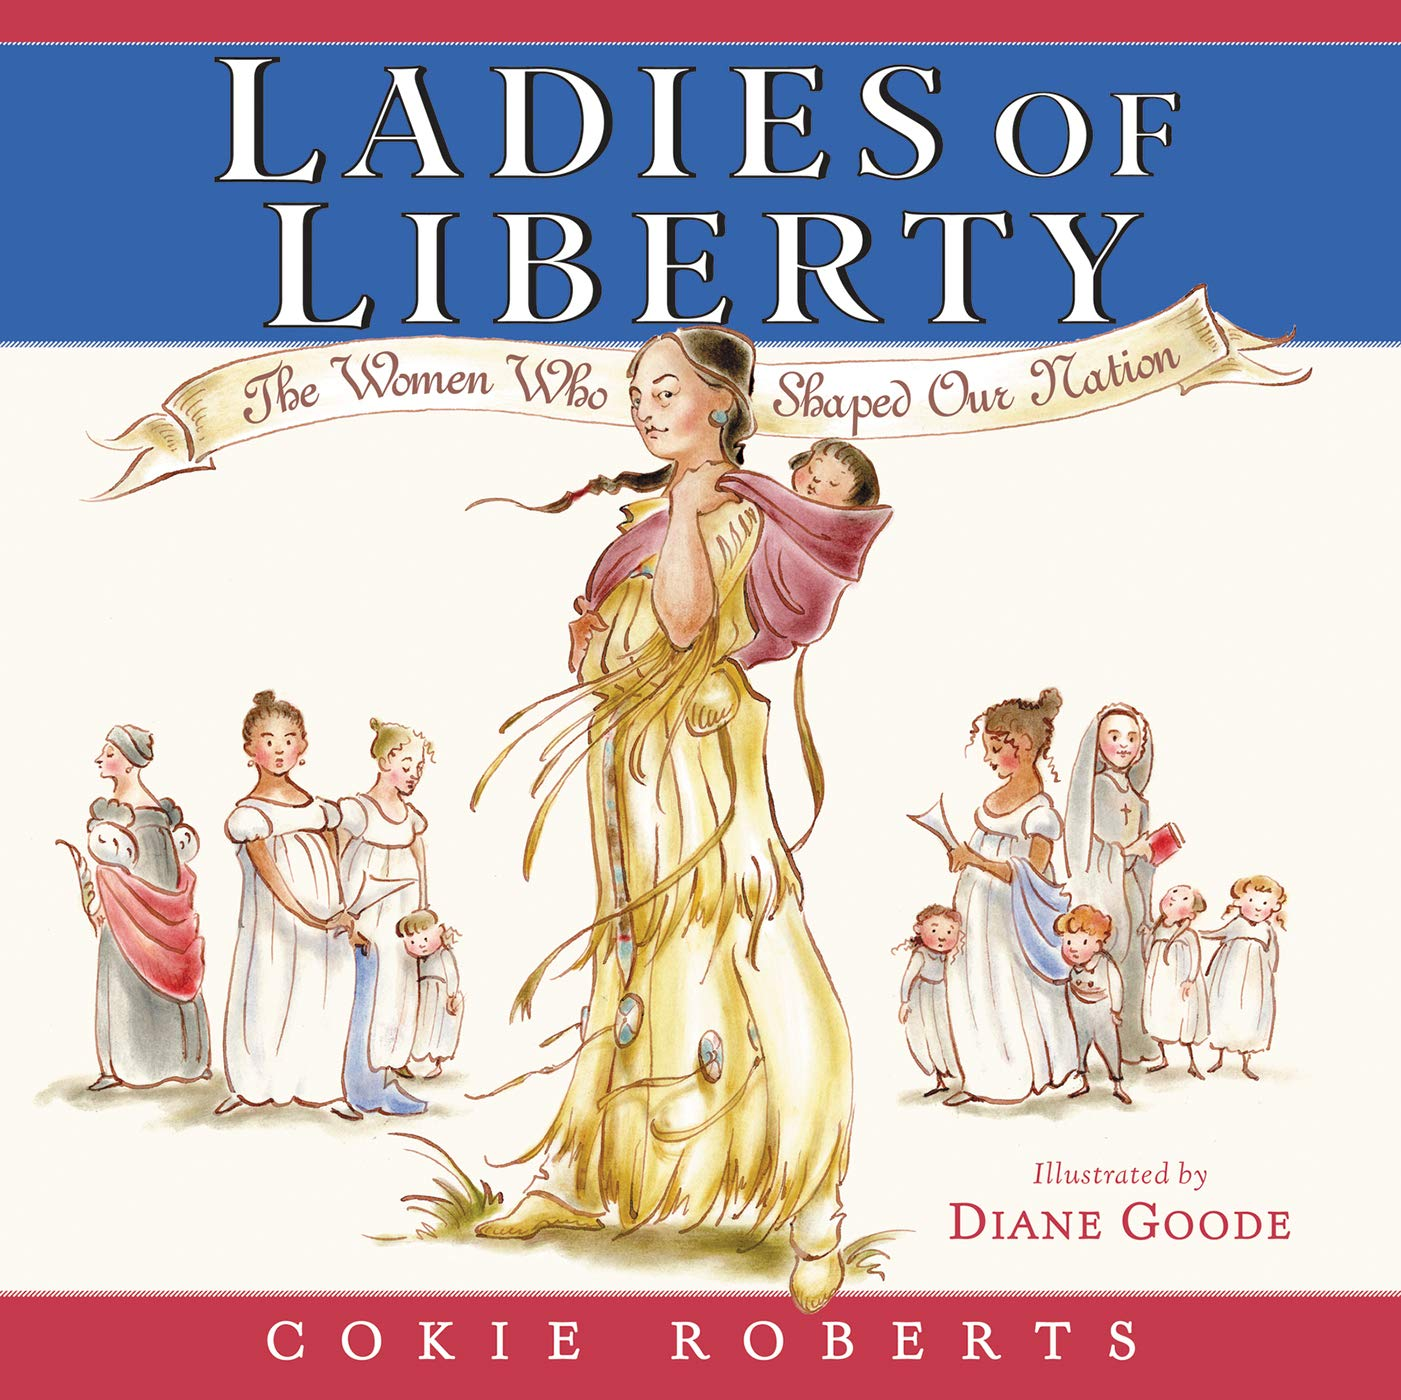 Ladies of liberty Opens in new window